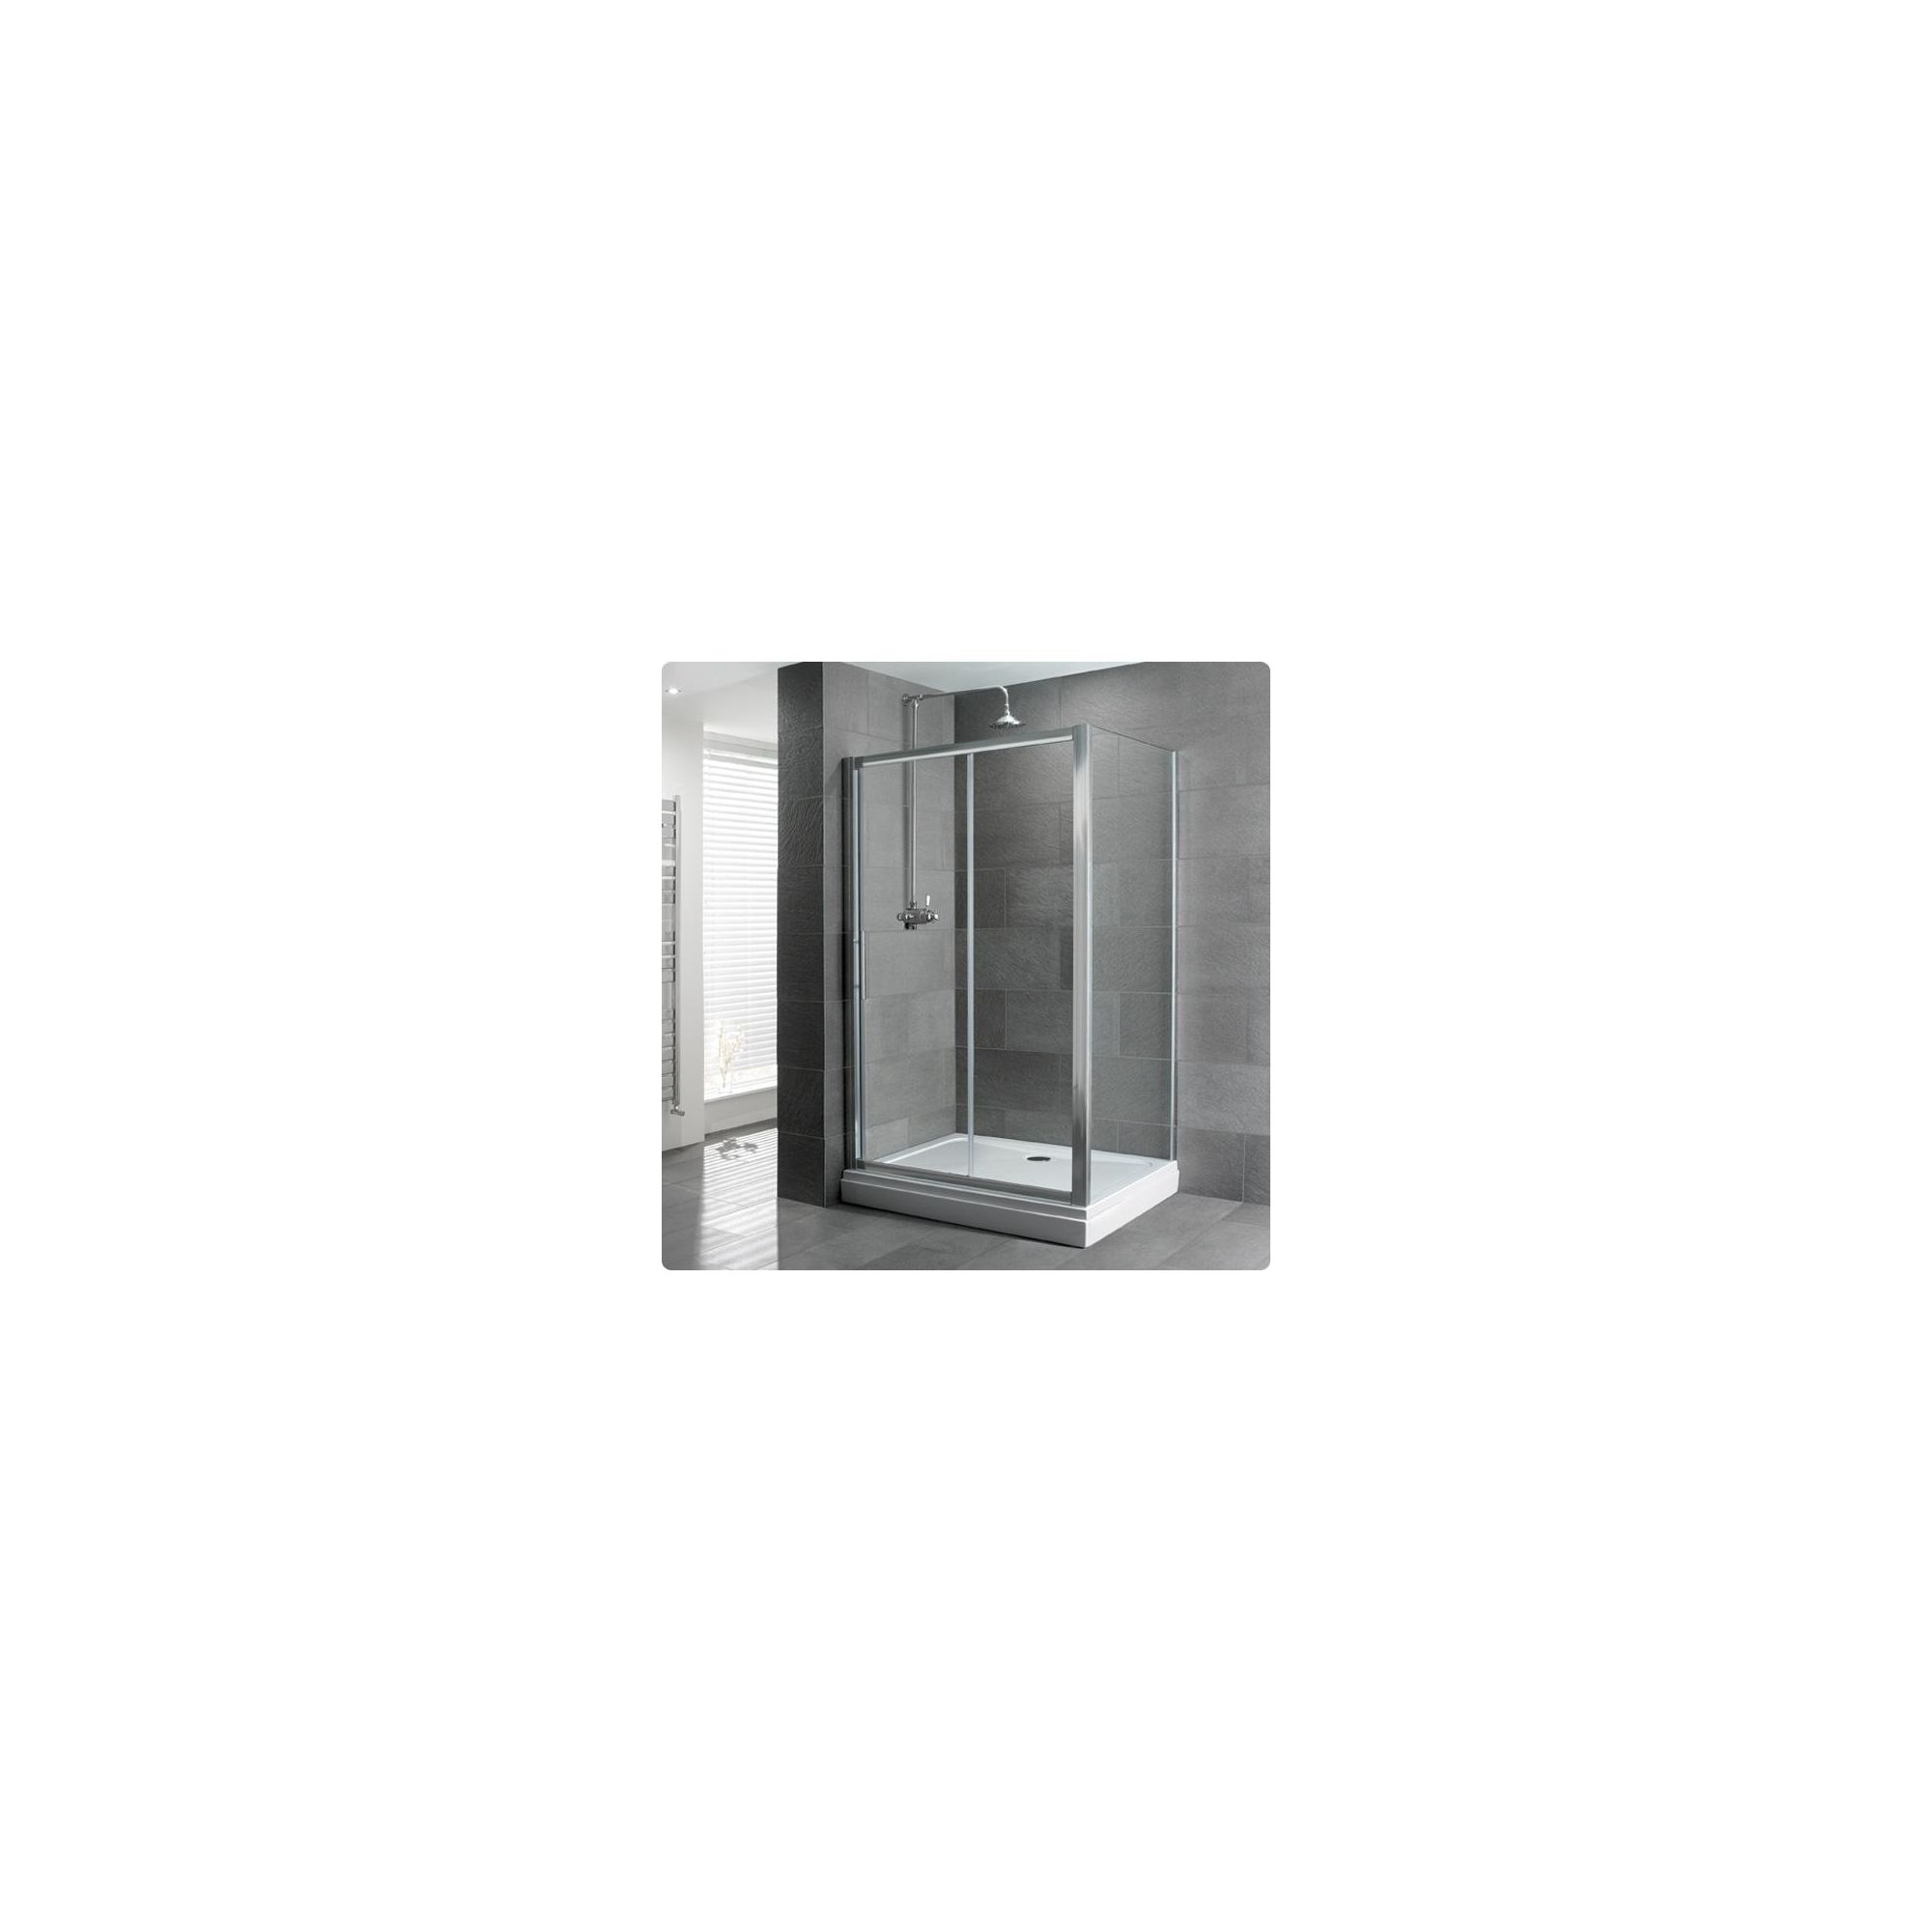 Duchy Select Silver Single Sliding Door Shower Enclosure, 1400mm x 900mm, Standard Tray, 6mm Glass at Tesco Direct